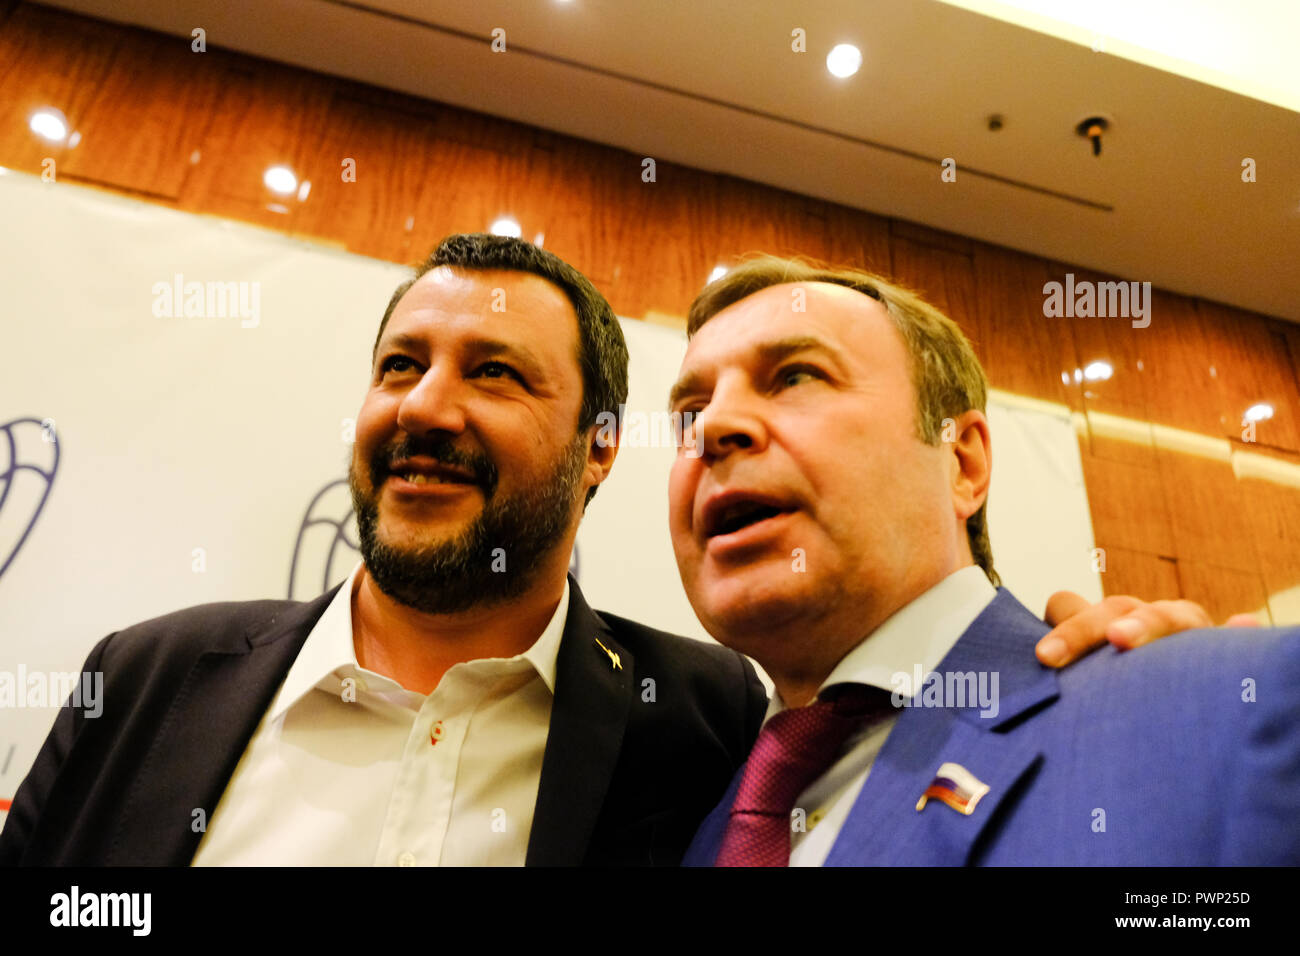 Moscow, Russia. 17th Oct, 2018. Moscow Russia. Vice premier and italian minister Matteo Salvini at the annual meeting of italian Confindustria Russia Credit: Marco Ciccolella/Alamy Live News - Stock Image